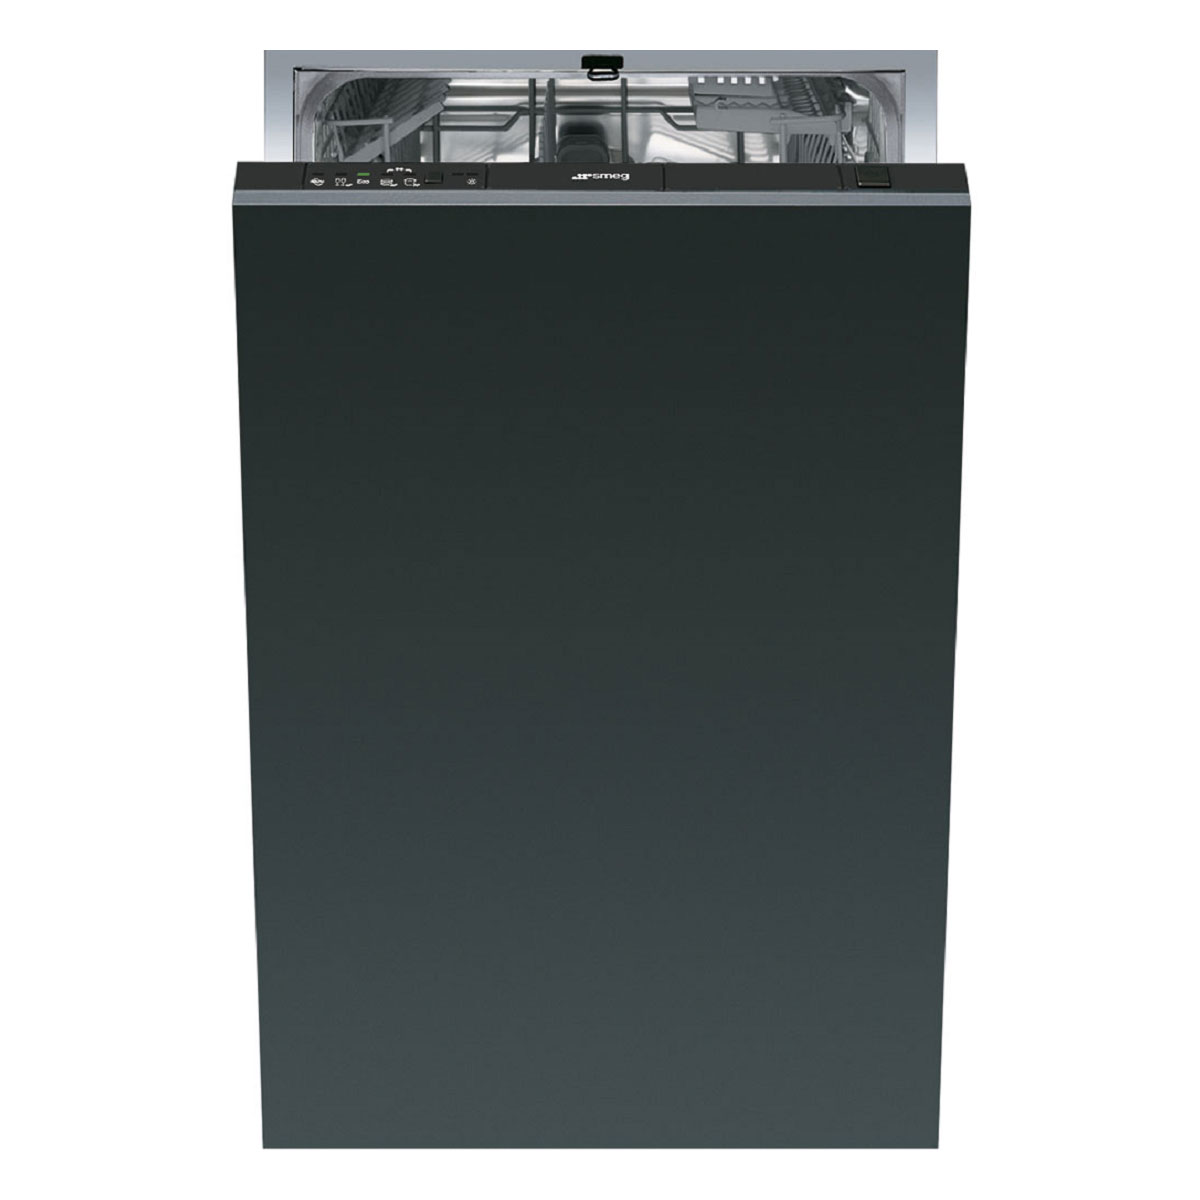 Smeg Fully Integrated DWAFI4510